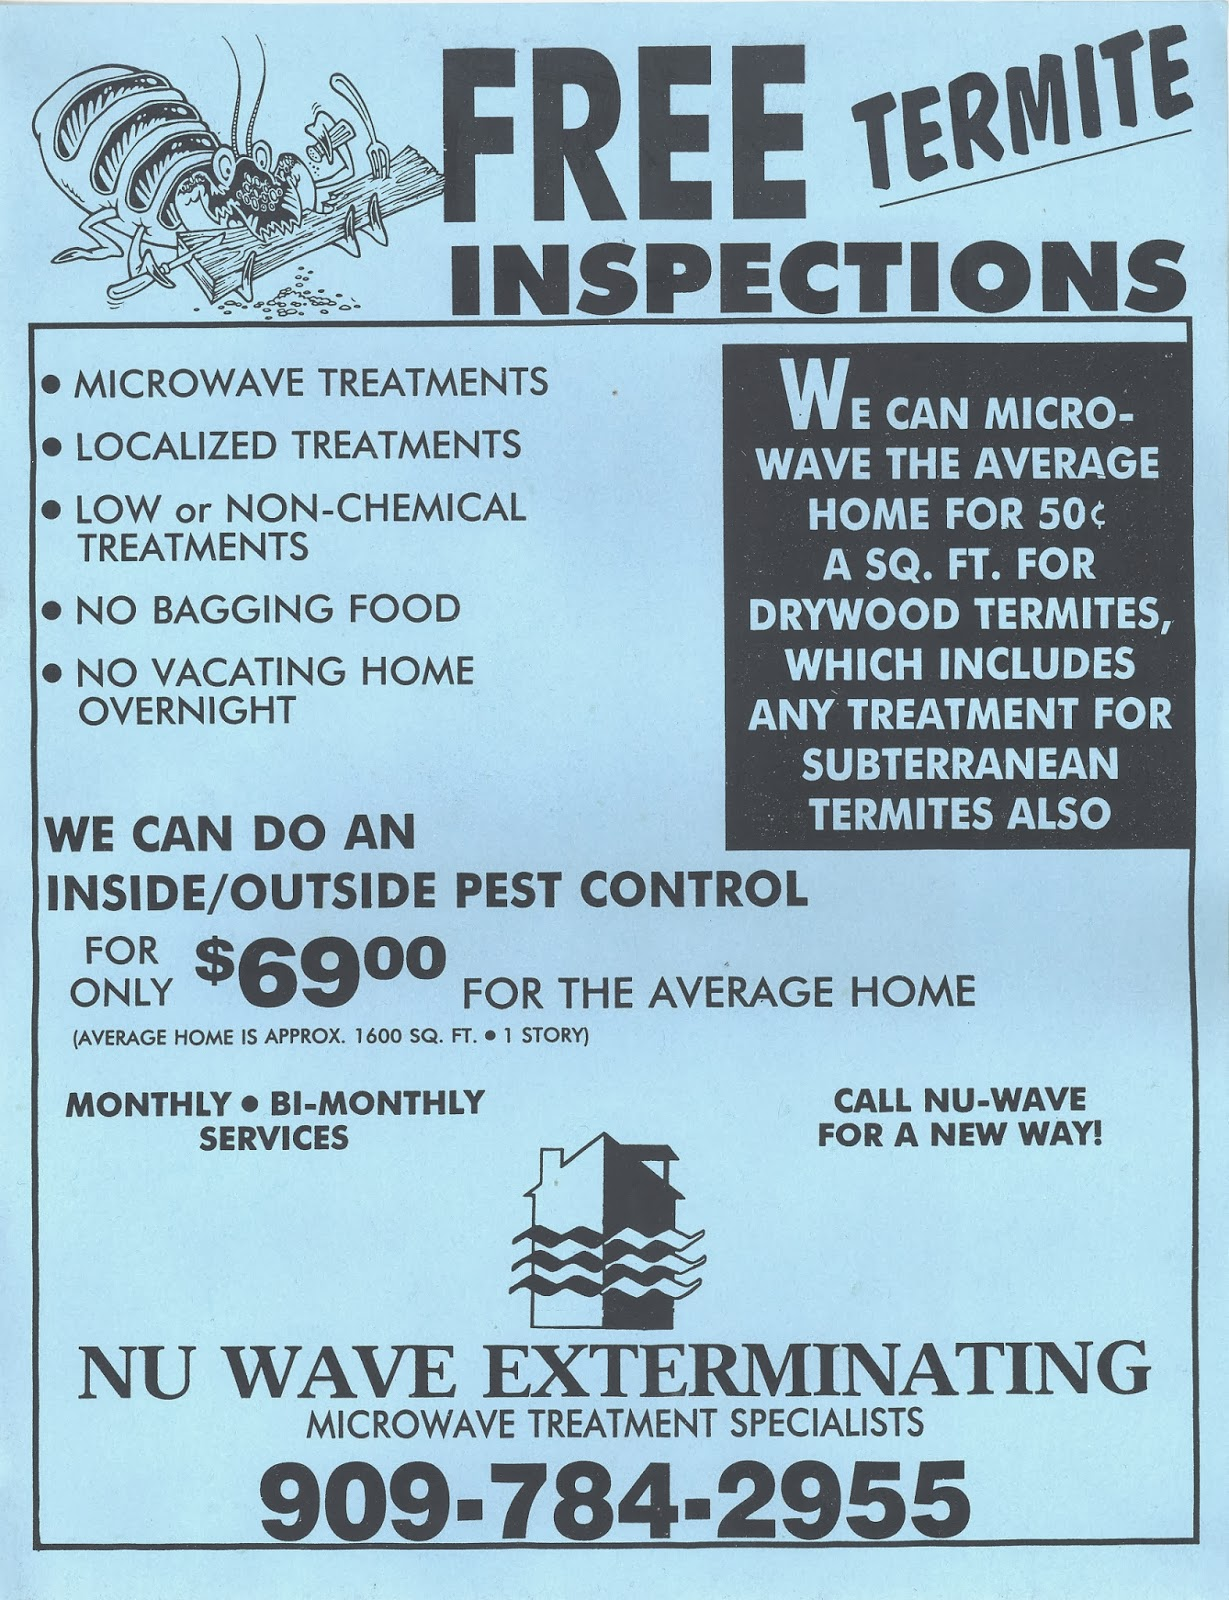 microwave termite treat talk microwave termite treatment microwave termite treatment advertising flyers